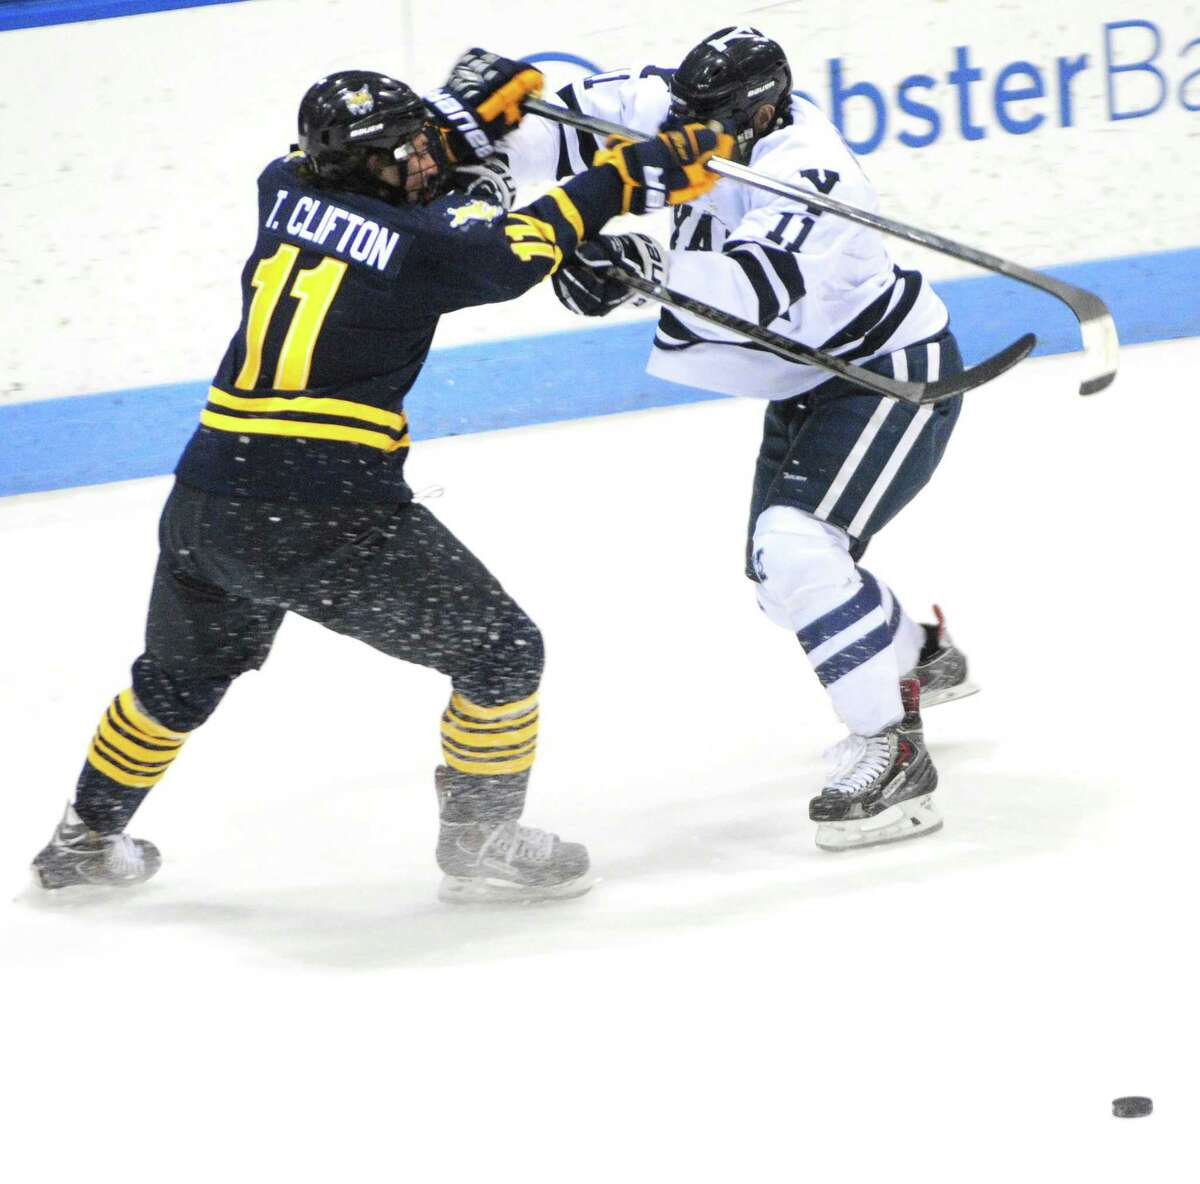 Quinnipiac's Tim Clifton, left, and Yale's Trent Ruffolo fight for the puck in the first period.